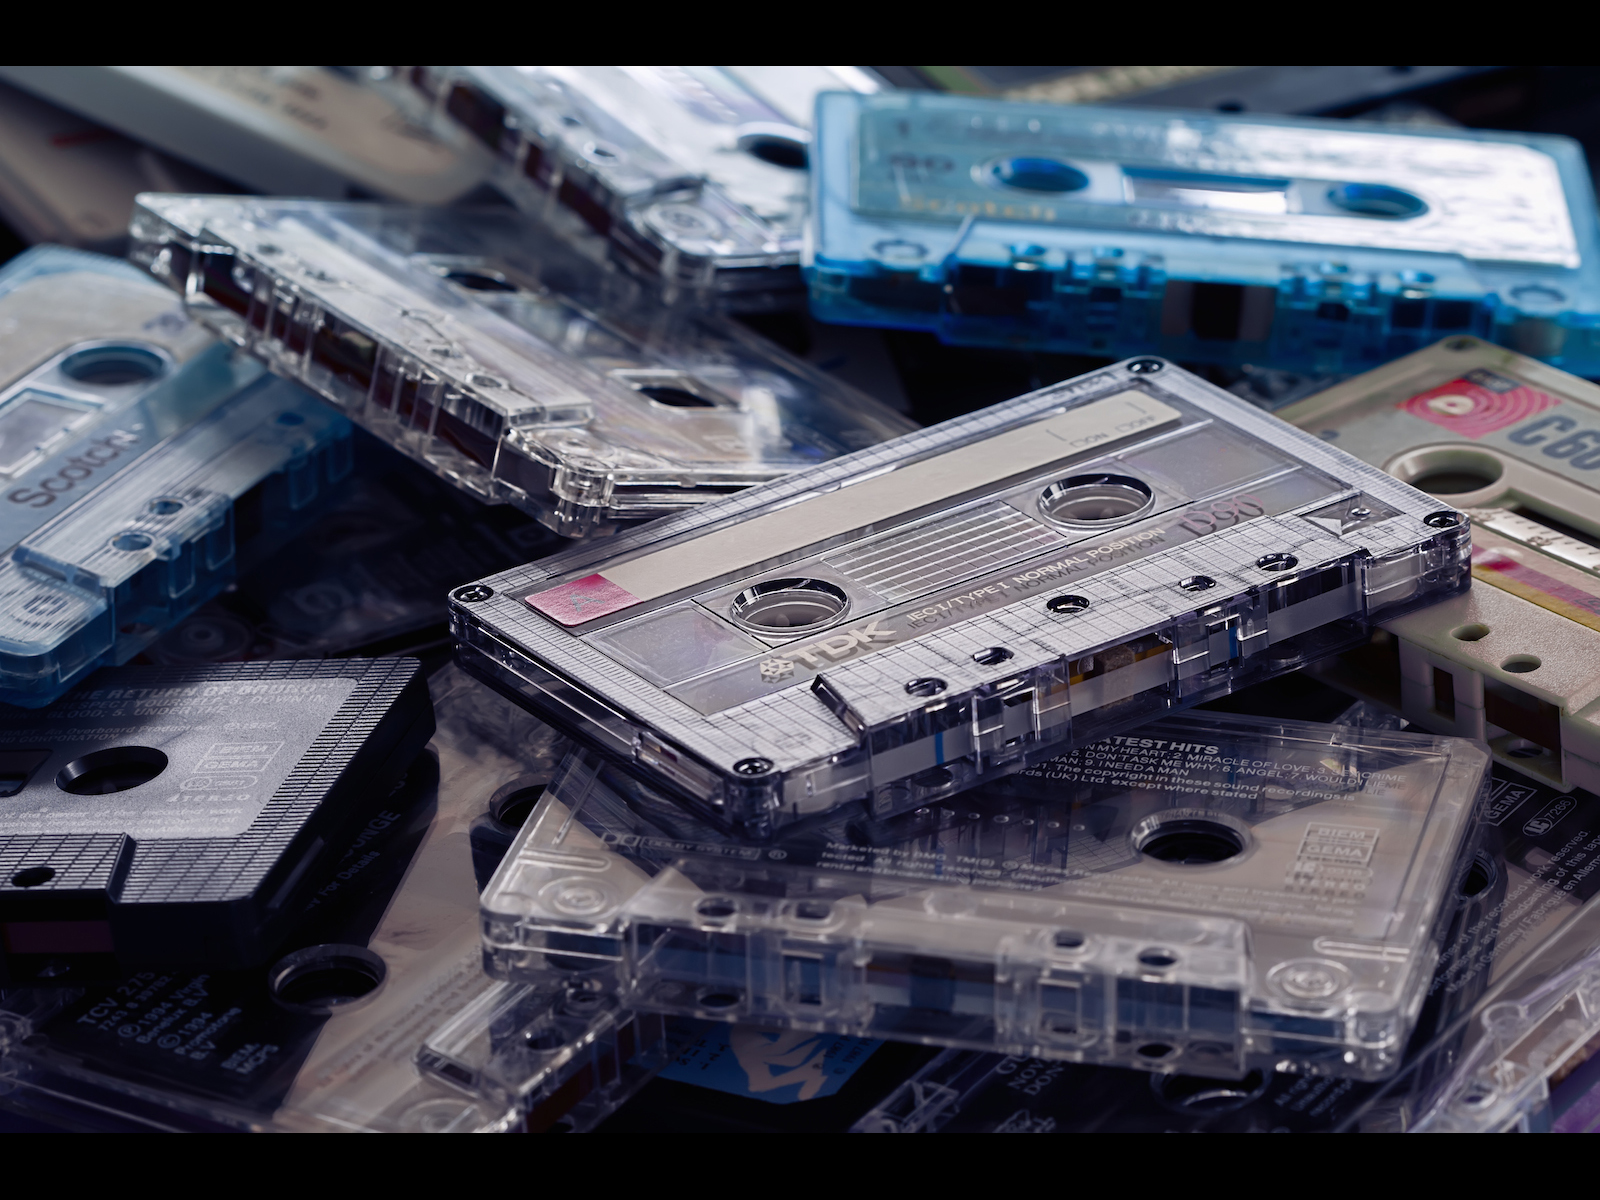 COME BACK – CASSETTE TAPE